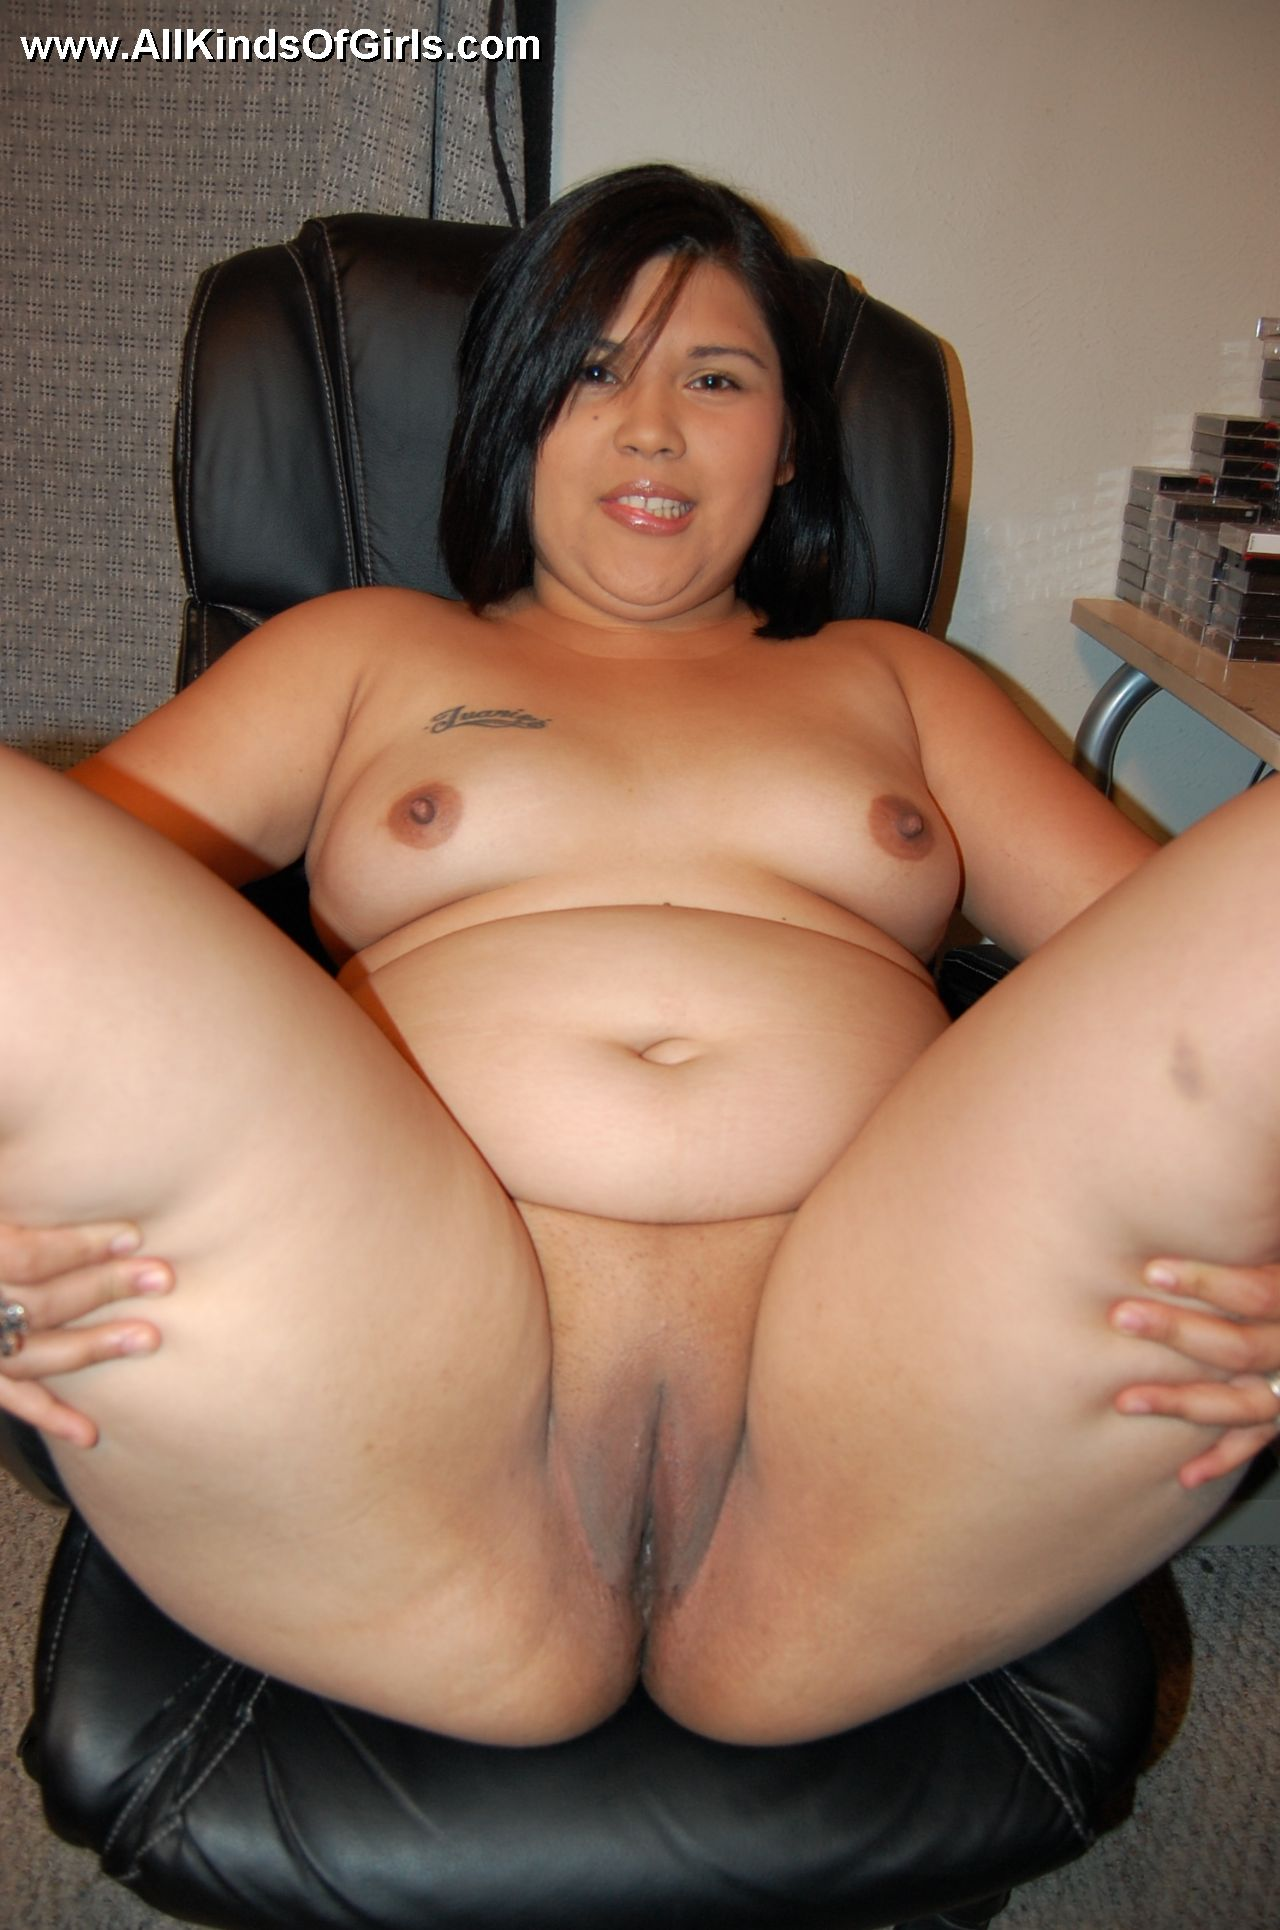 Chubby naked older mature women understood